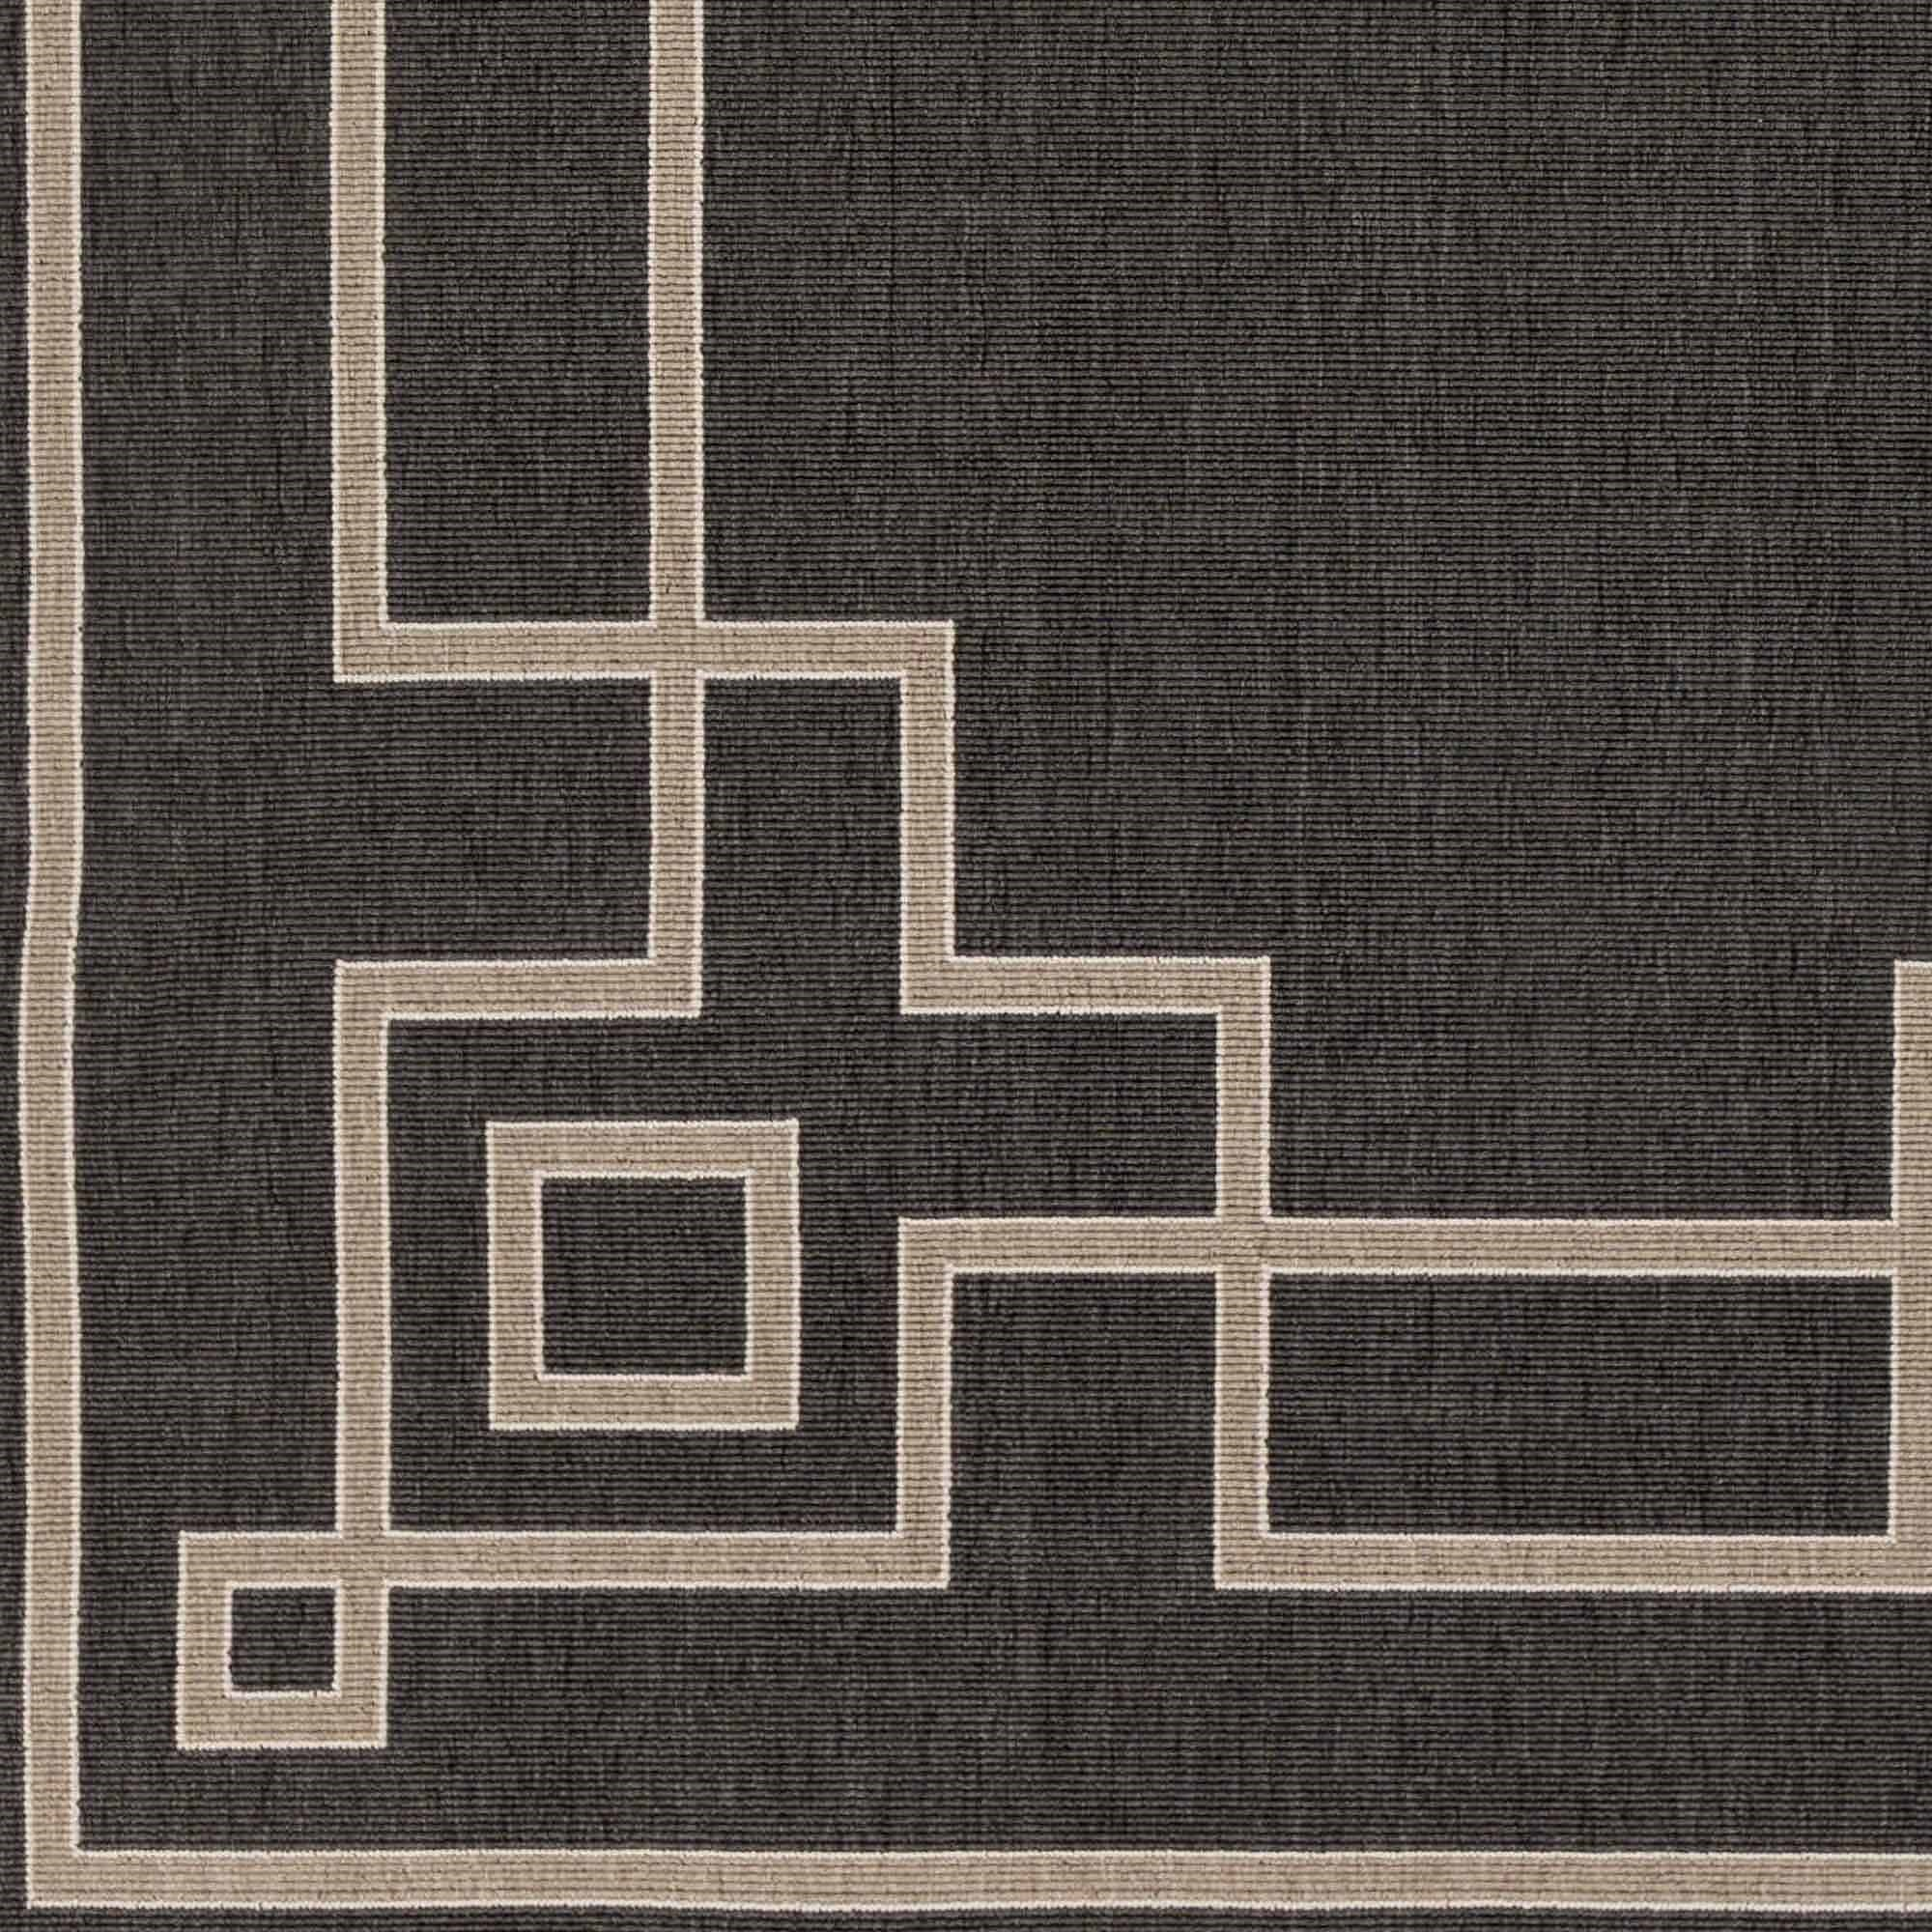 Art of Knot Luxor Machine Made Greek Key Border Indoor/Outdoor Runner, Black